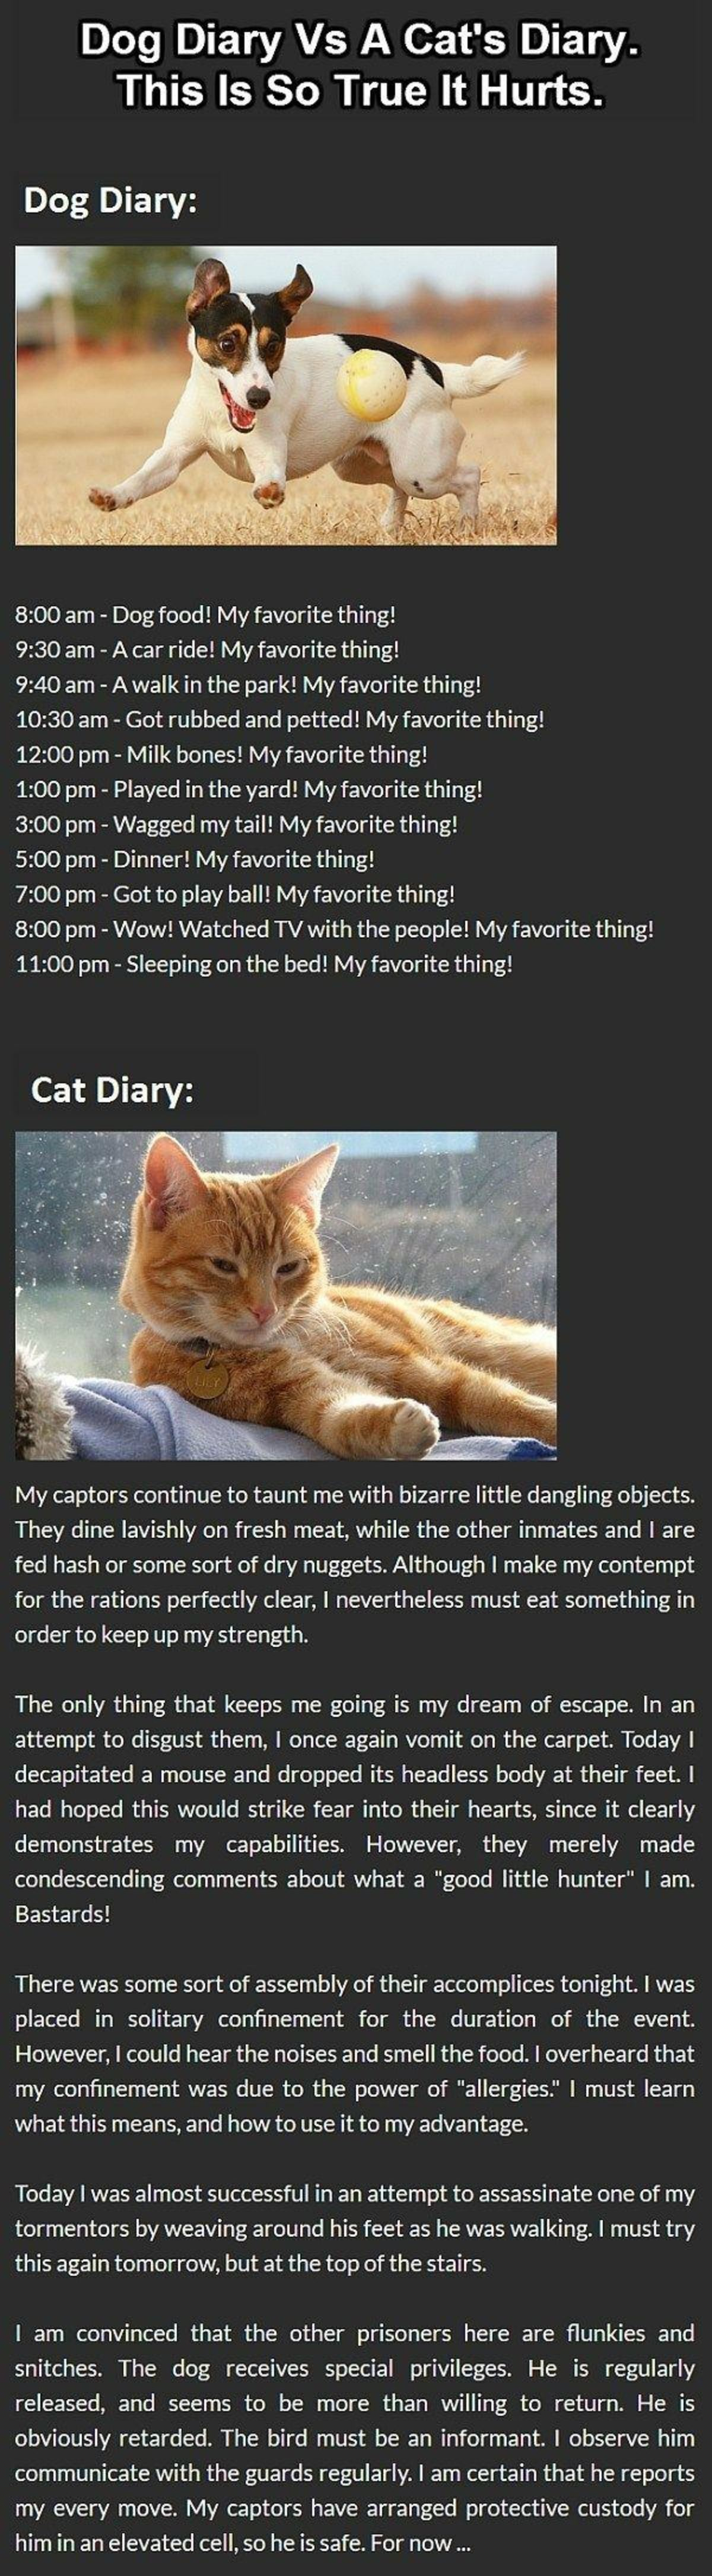 "Funny: Cat Vs Dog Diary. join list: CuteKitty (401 subs)Mention Clicks: 14247Msgs Sent: 121216Mention History join list:. ""He is obviously retarded"""